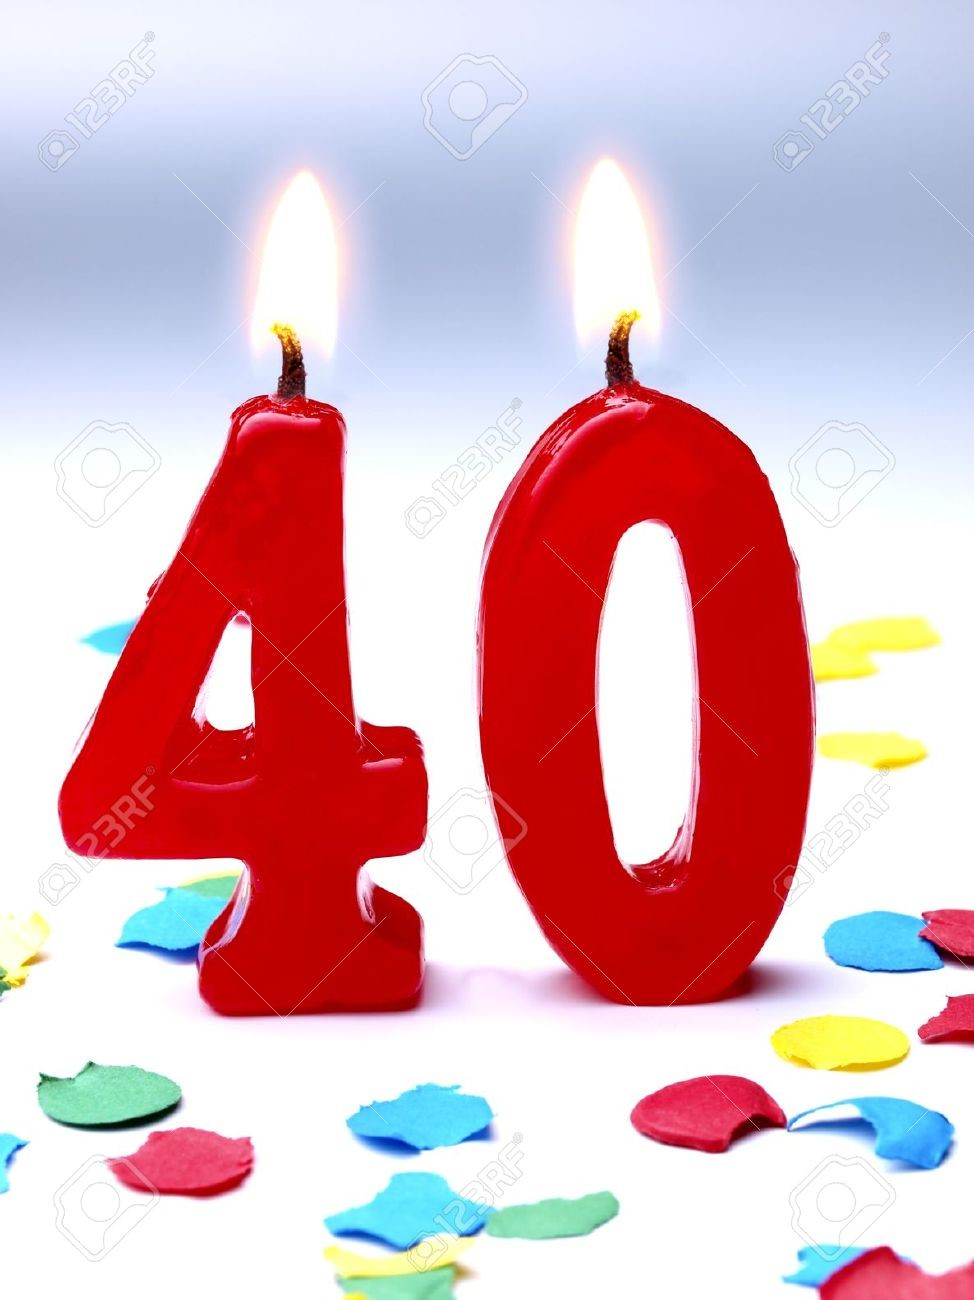 40 Candles 7 Years To Diagnosis